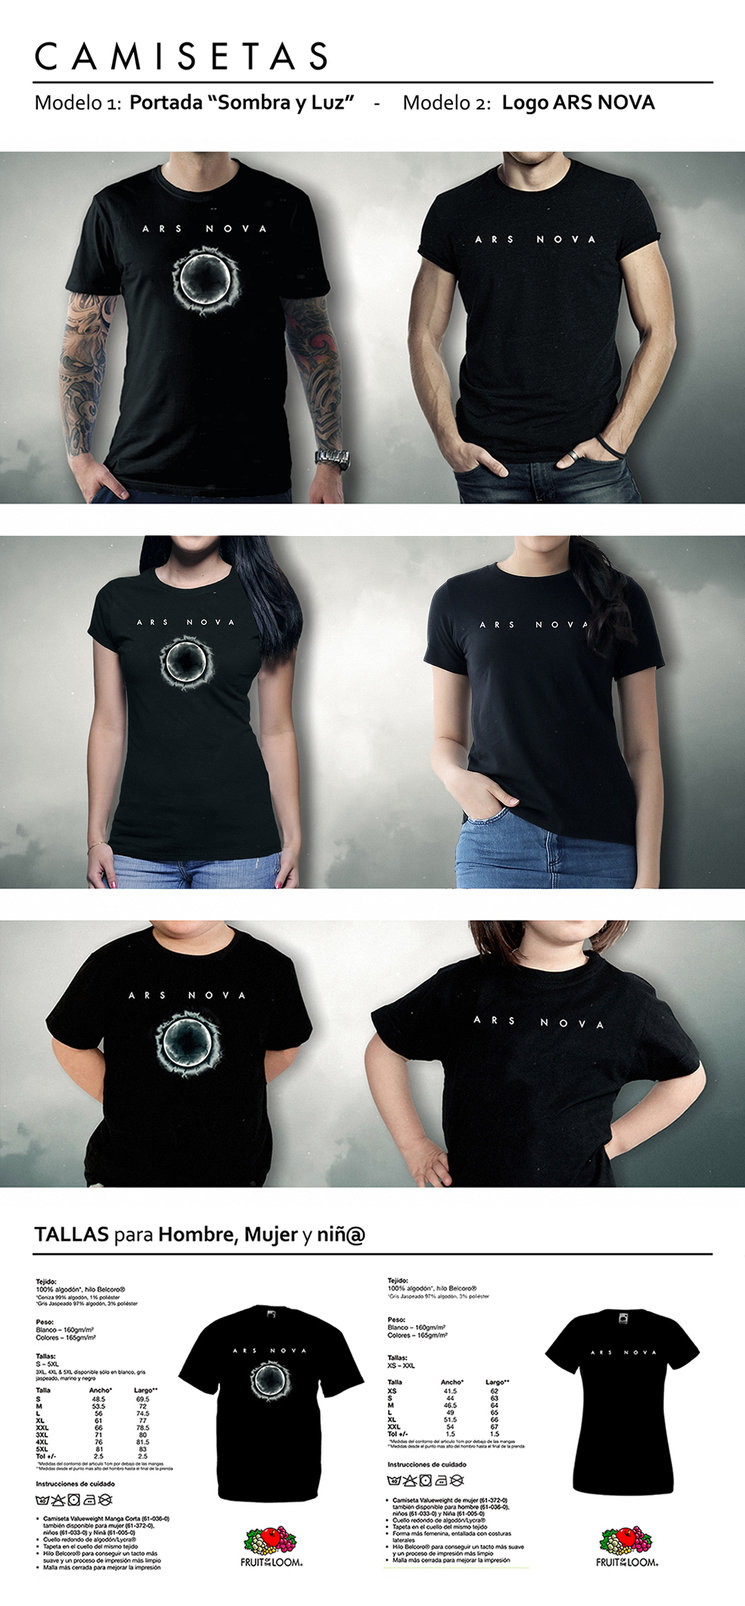 ARS NOVA T-Shirts, 2 designs to choose from and all sizes for men, women and children available.